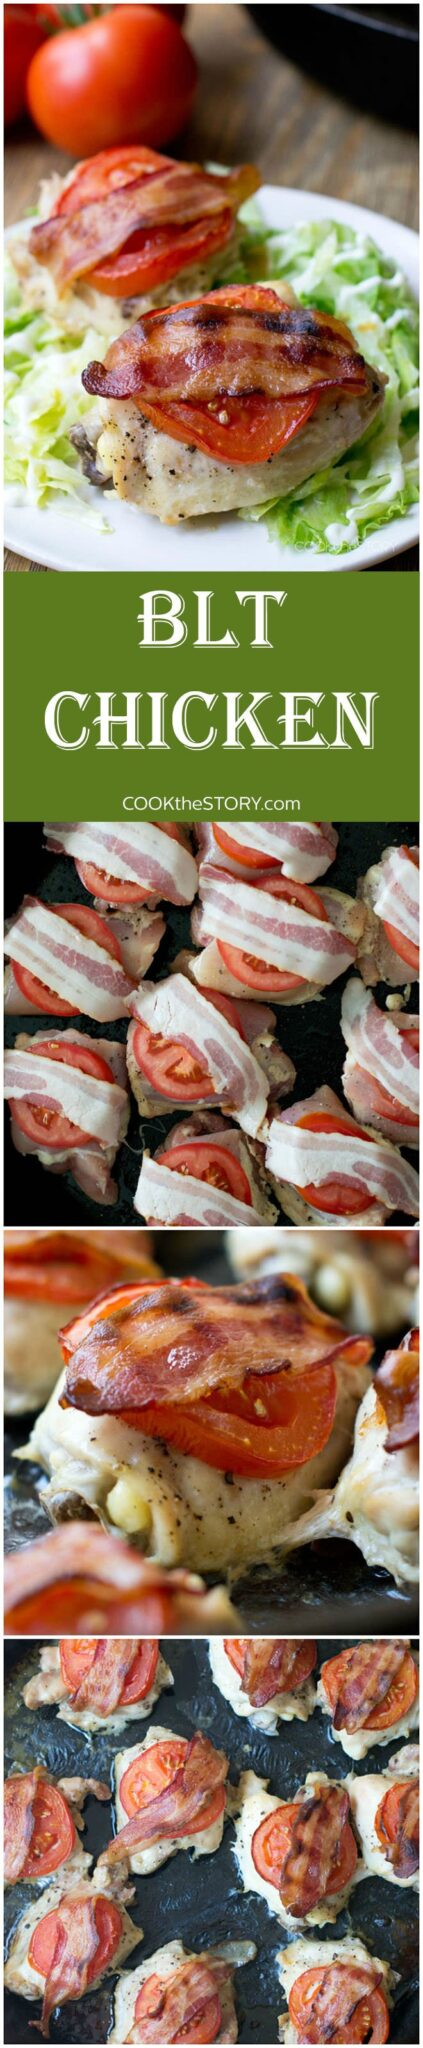 Who loves BLT's? This BLT Chicken recipe takes those classic flavors and brings them to the dinner table.